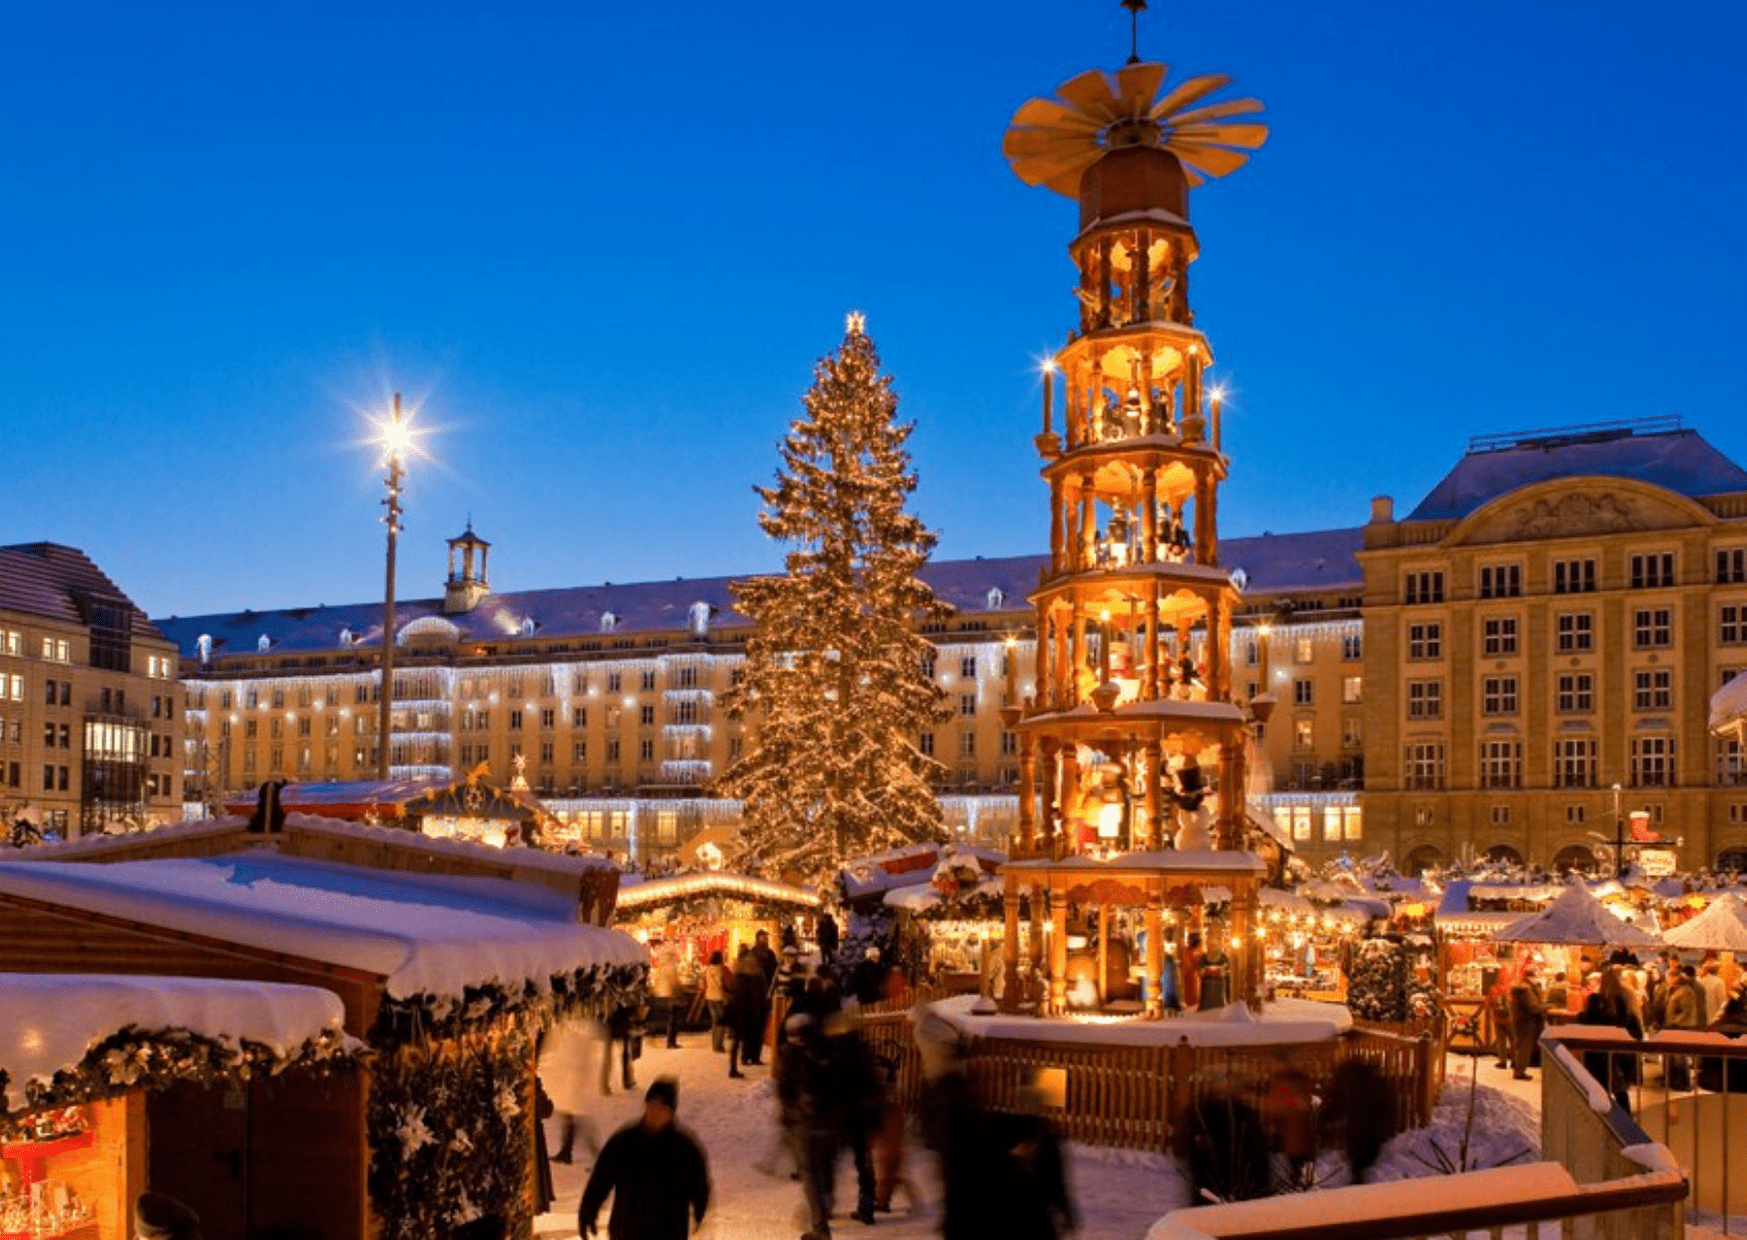 The Striezelmarkt in Dresden, one of the oldest and best German Christmas markets. Photo LHD/Sylvio Dittrich via striezelmarkt.dresden.de